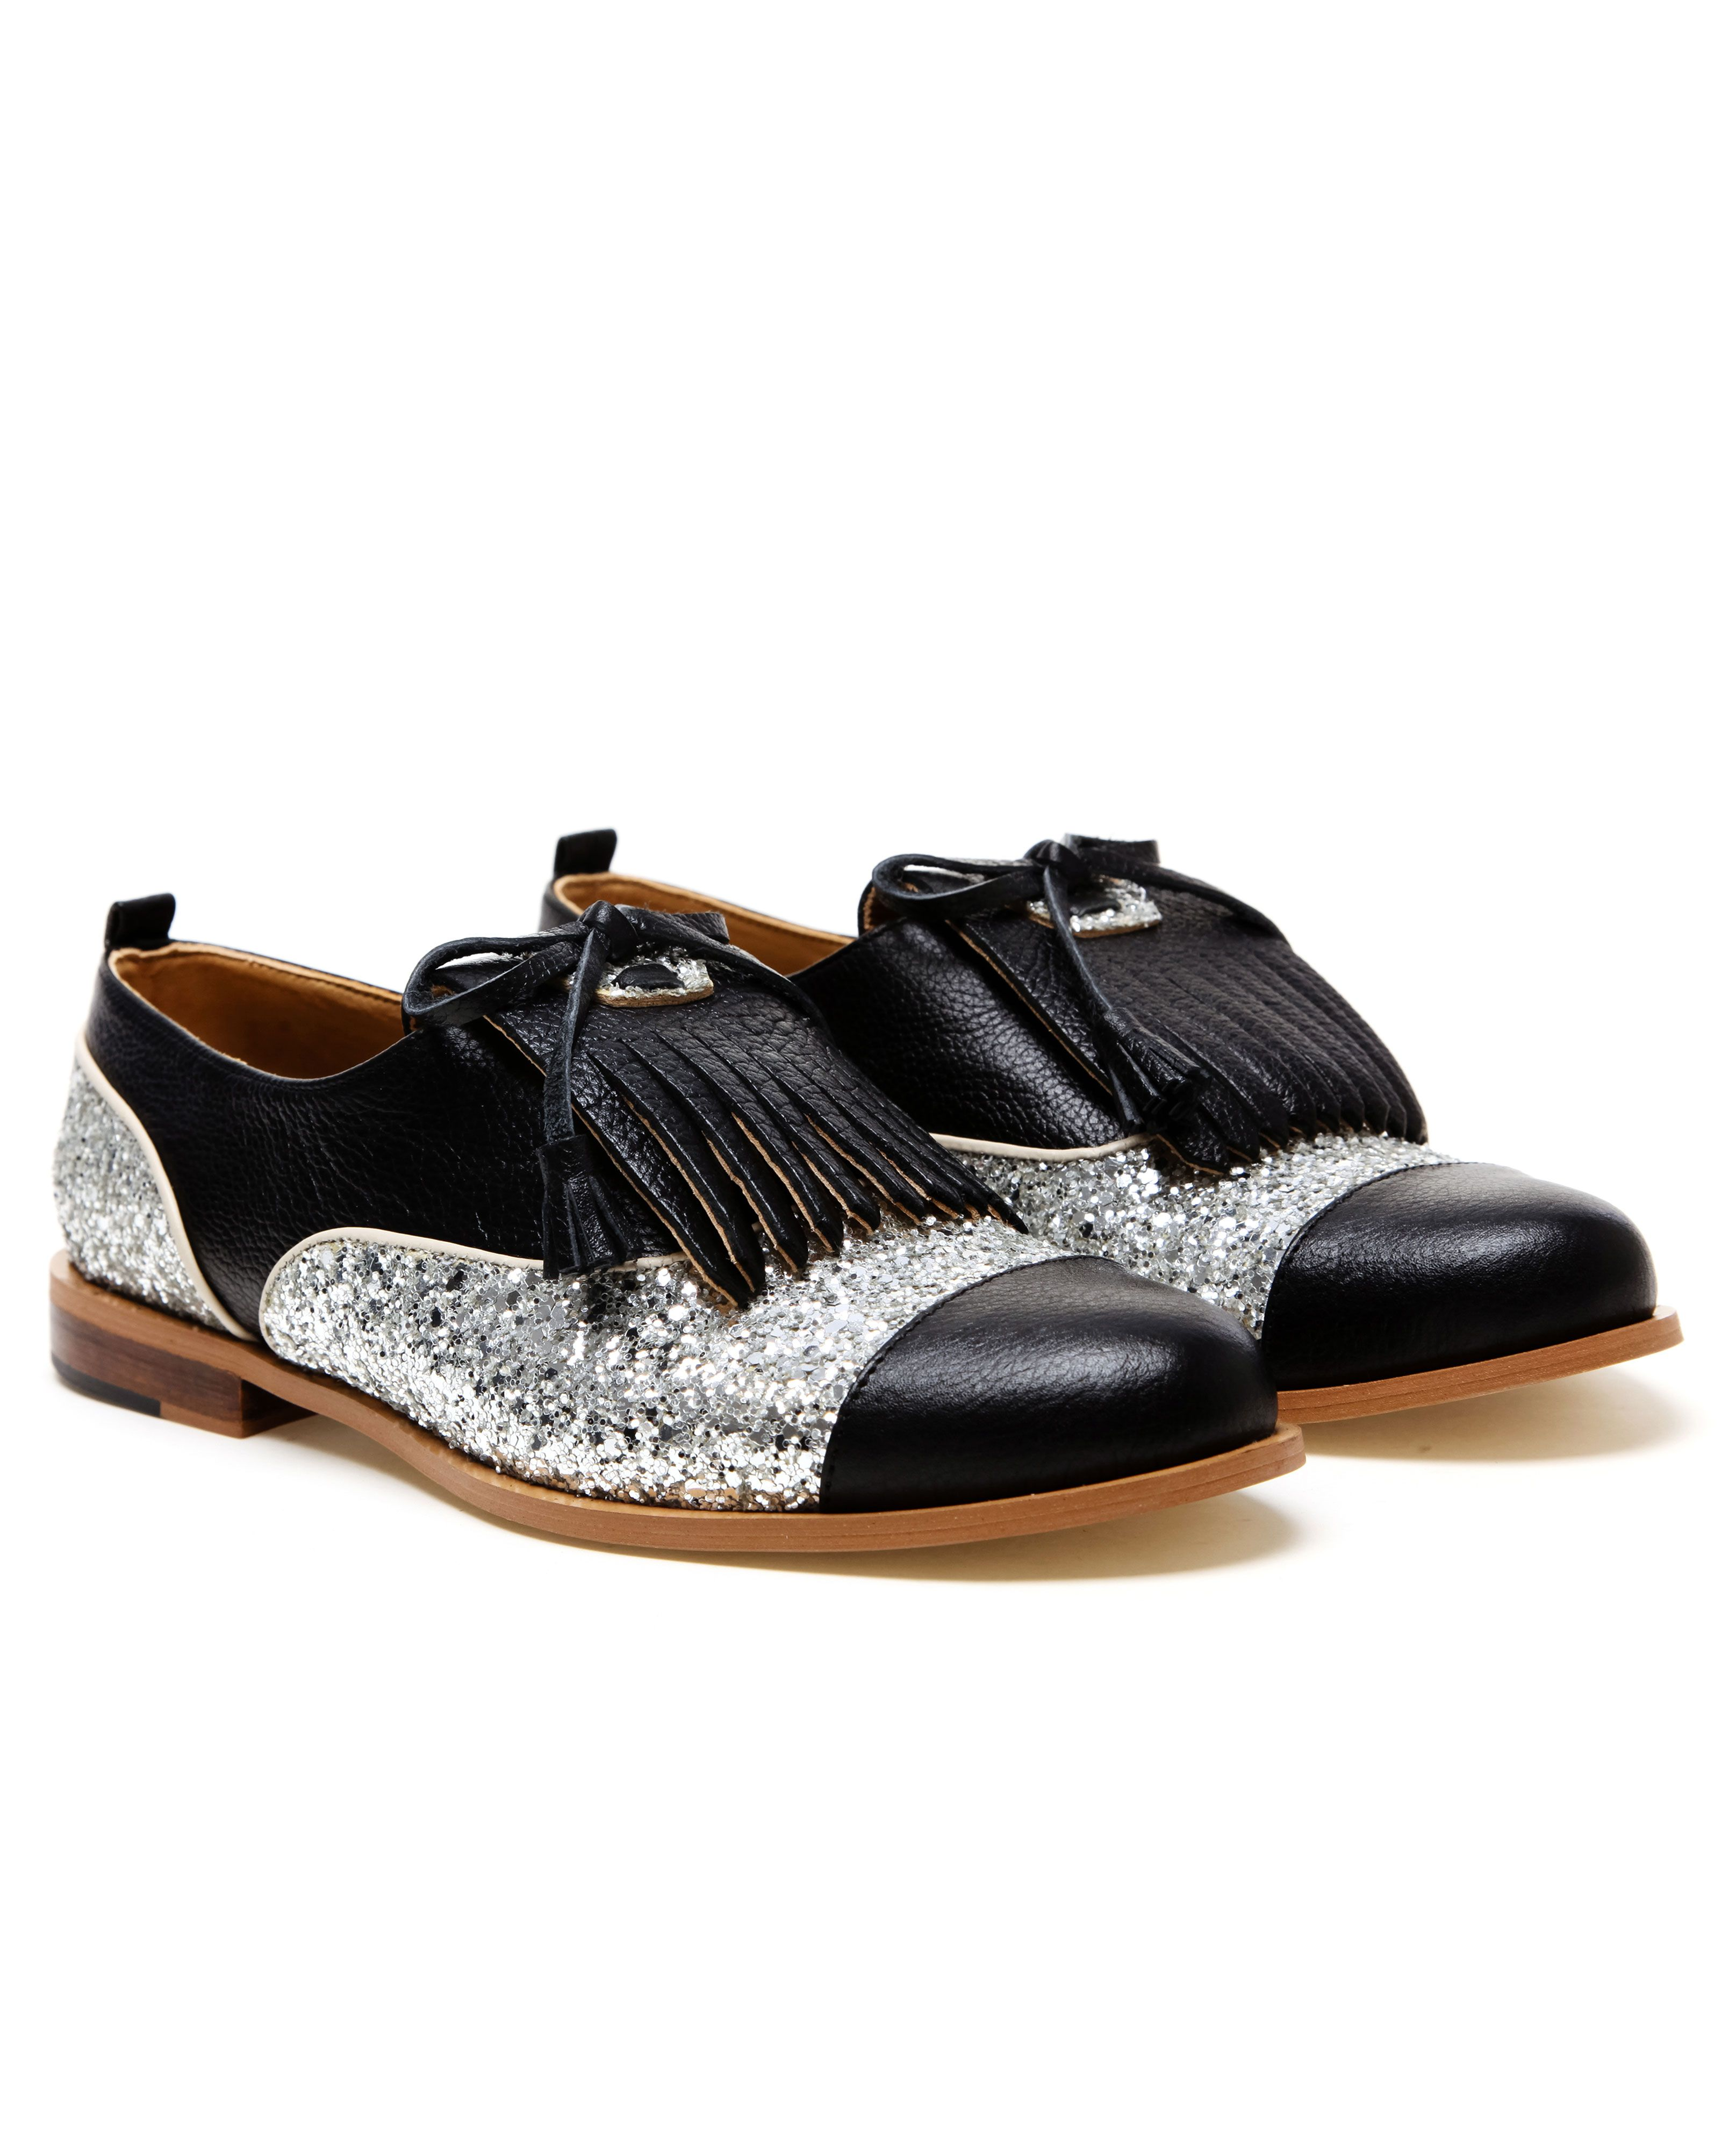 4ec03a9c4f Leather Oxford shoes with silver glitter inserts and kilties from Croon.